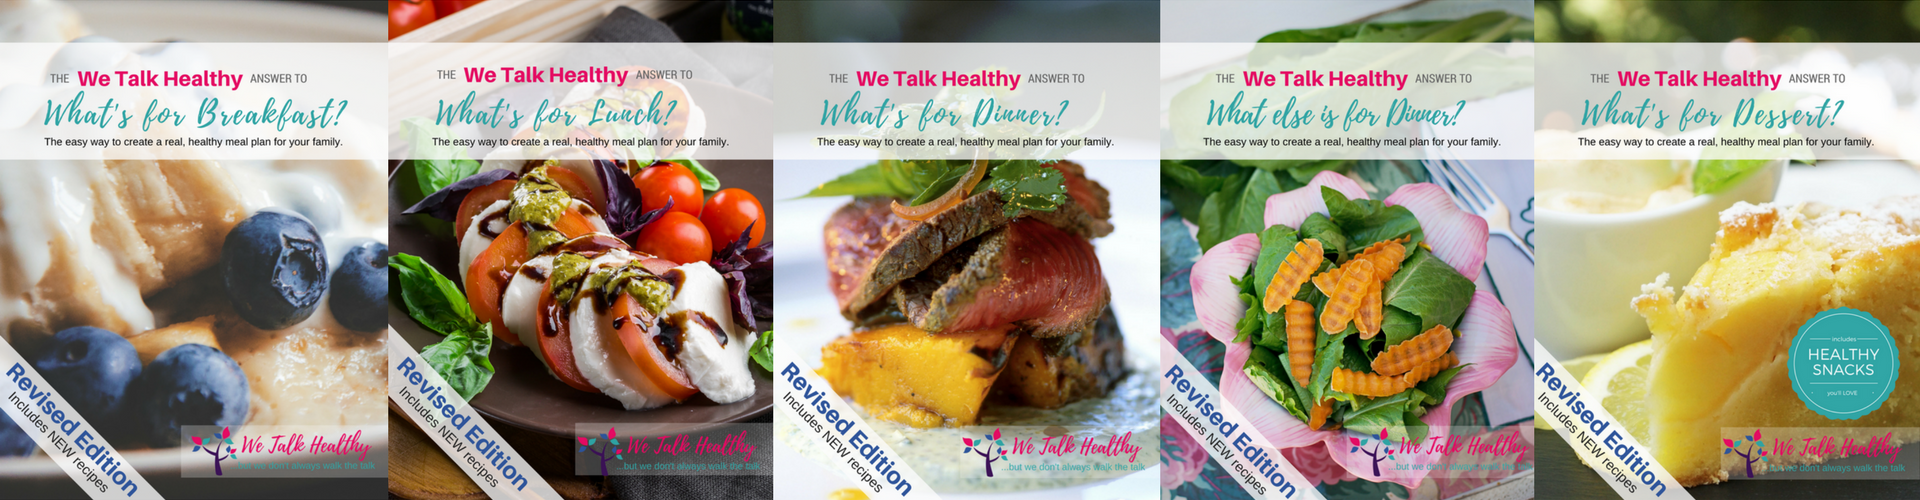 Revised We Talk Healthy Cookbooks